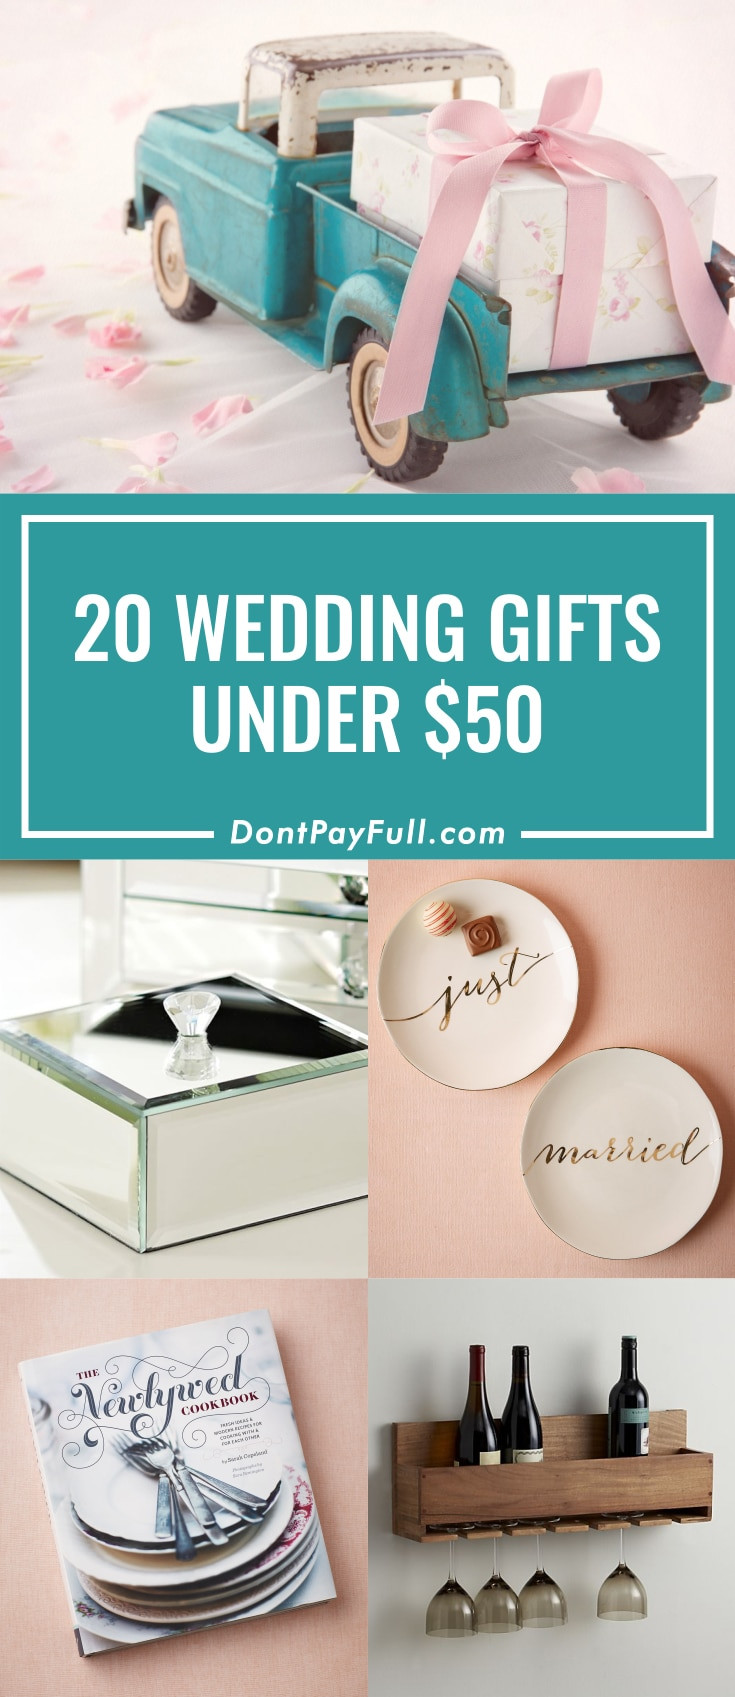 Best ideas about Bridesmaid Gift Ideas Under 20 . Save or Pin 20 Wedding Gift Ideas for Under $50 us225 Now.